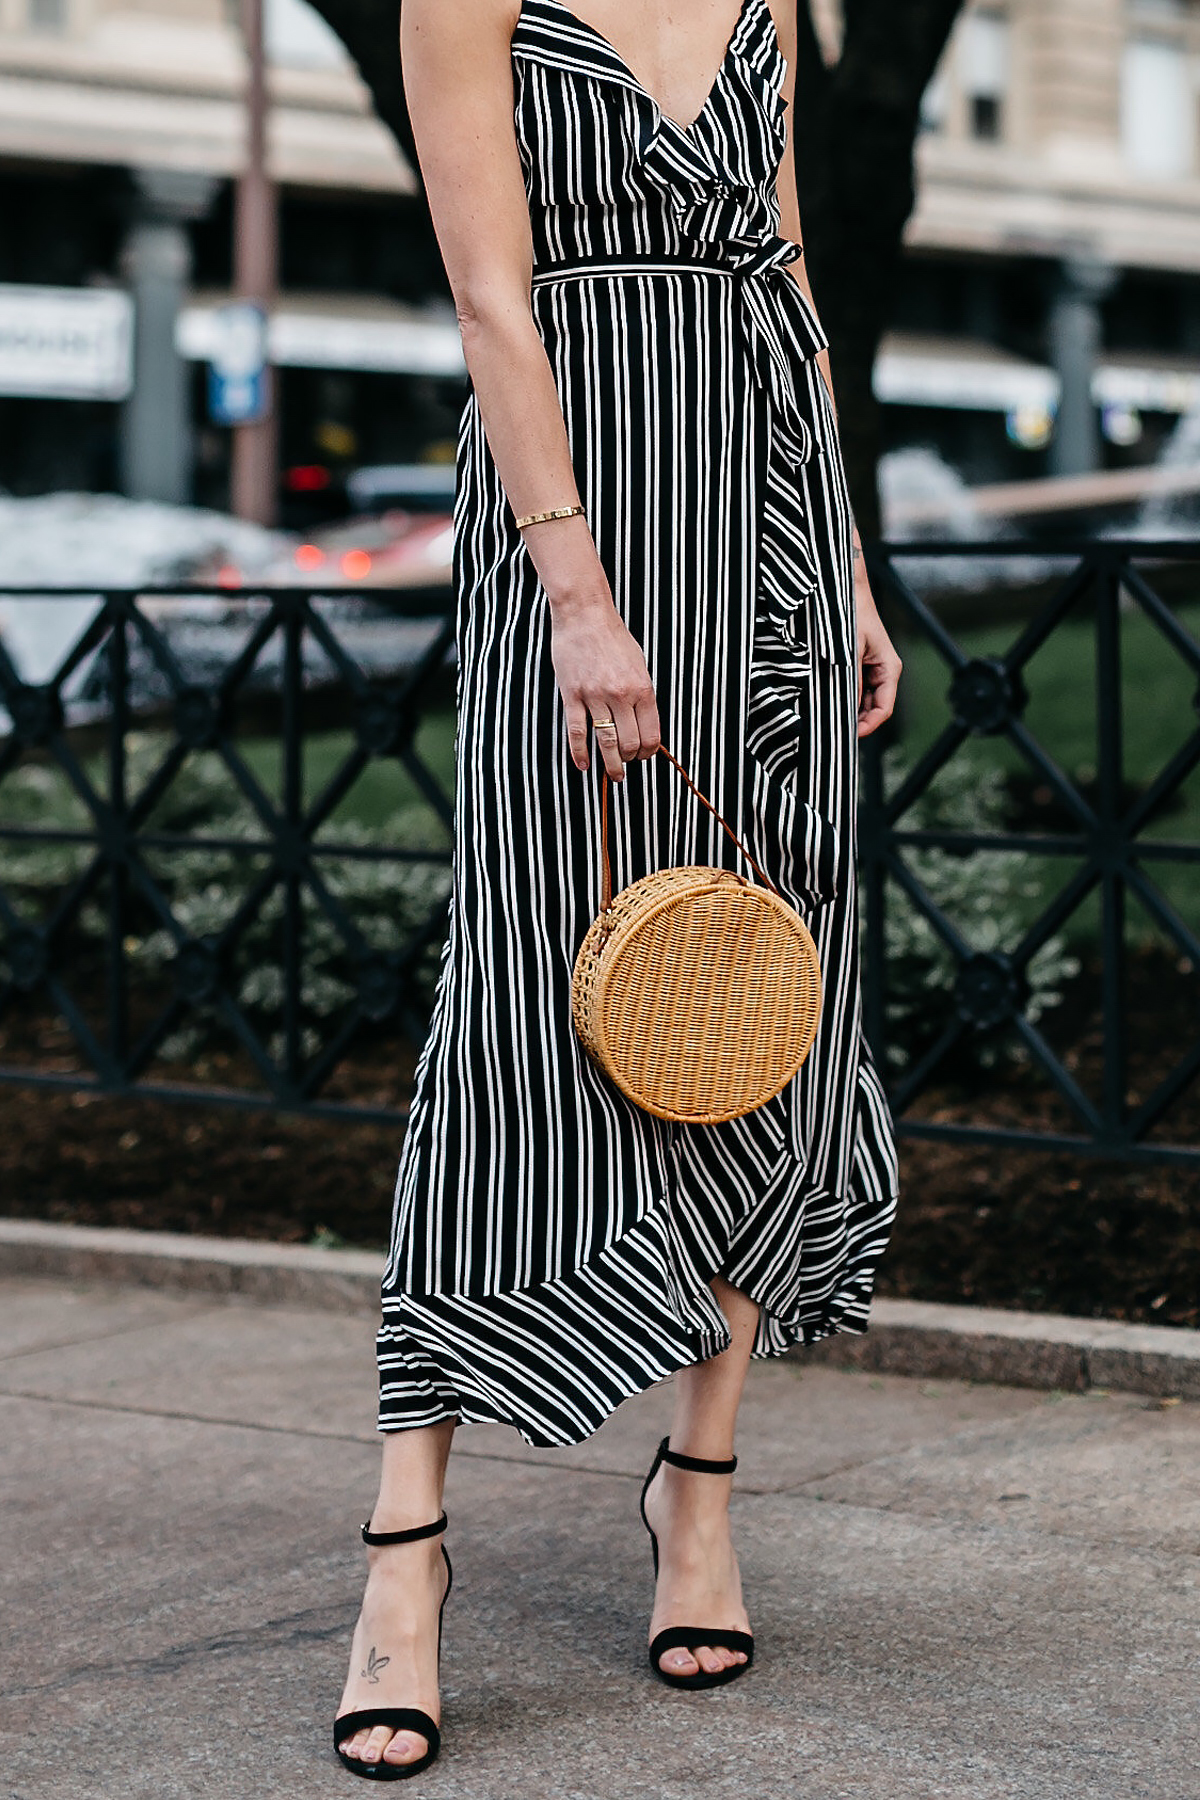 Woman Wearing AQUA Black White Stripe Maxi Dress Circle Straw Basket Handbag Black Ankle Strap Heeled Sandals Fashion Jackson Dallas Blogger Fashion Blogger Street Stye